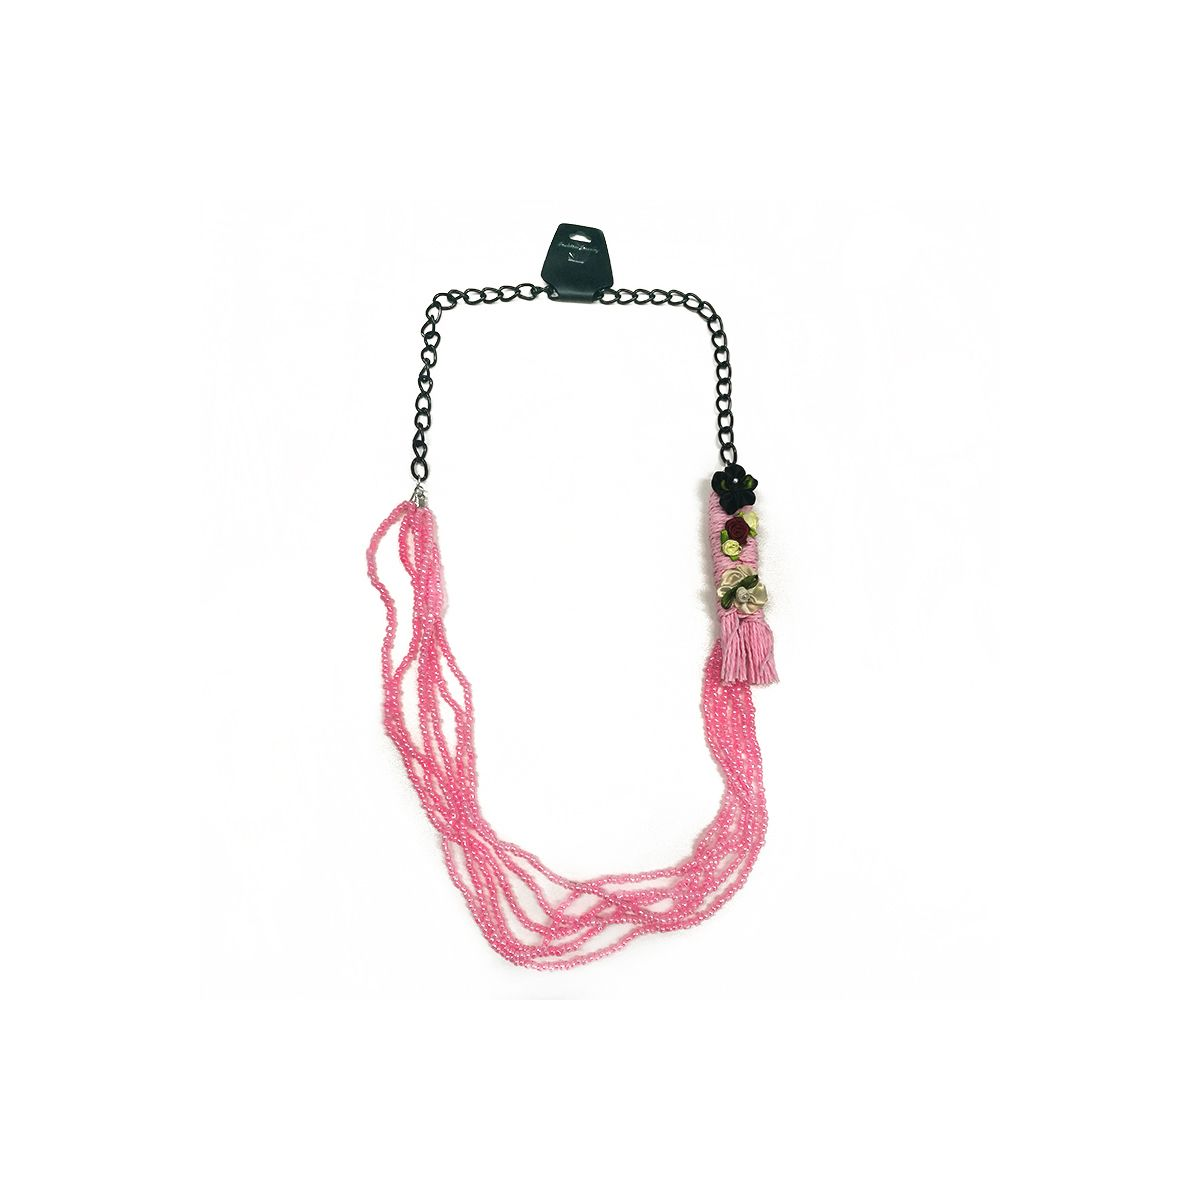 Floral Chain Beaded Necklace - Black/Pink (OLD110117PK)